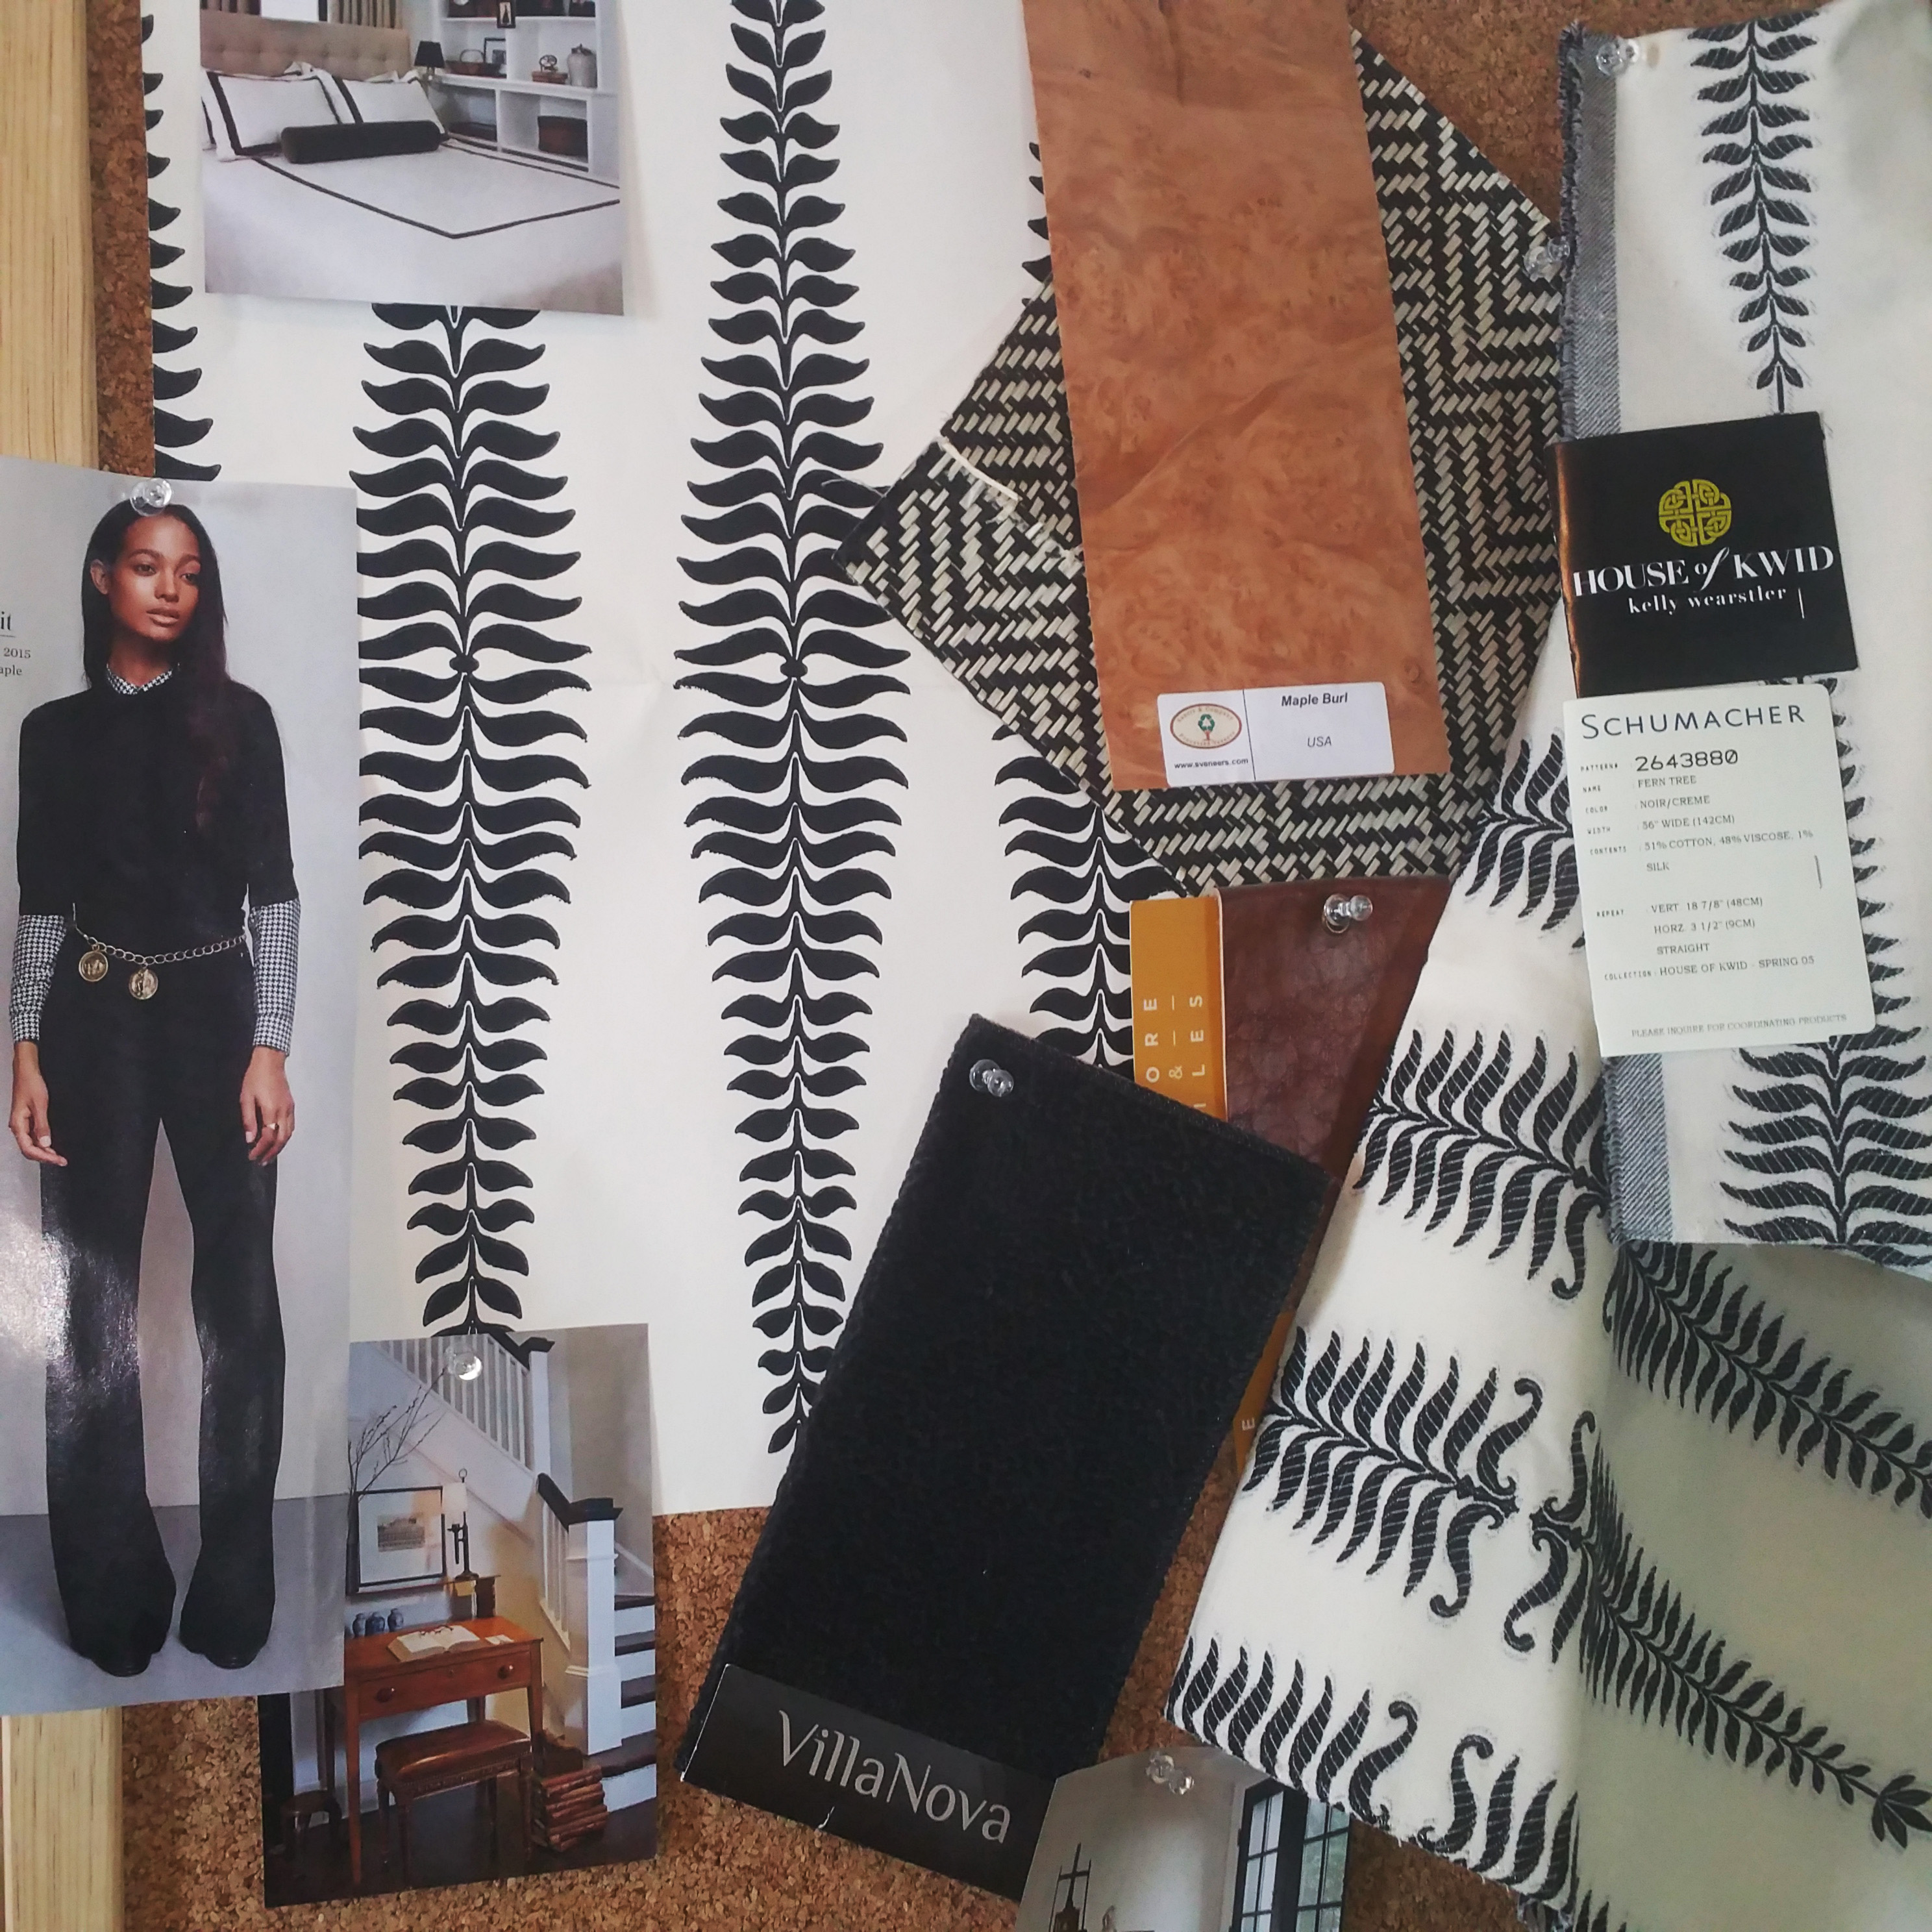 Inspirational Moodboard For Upcoming Graphic Design Projects